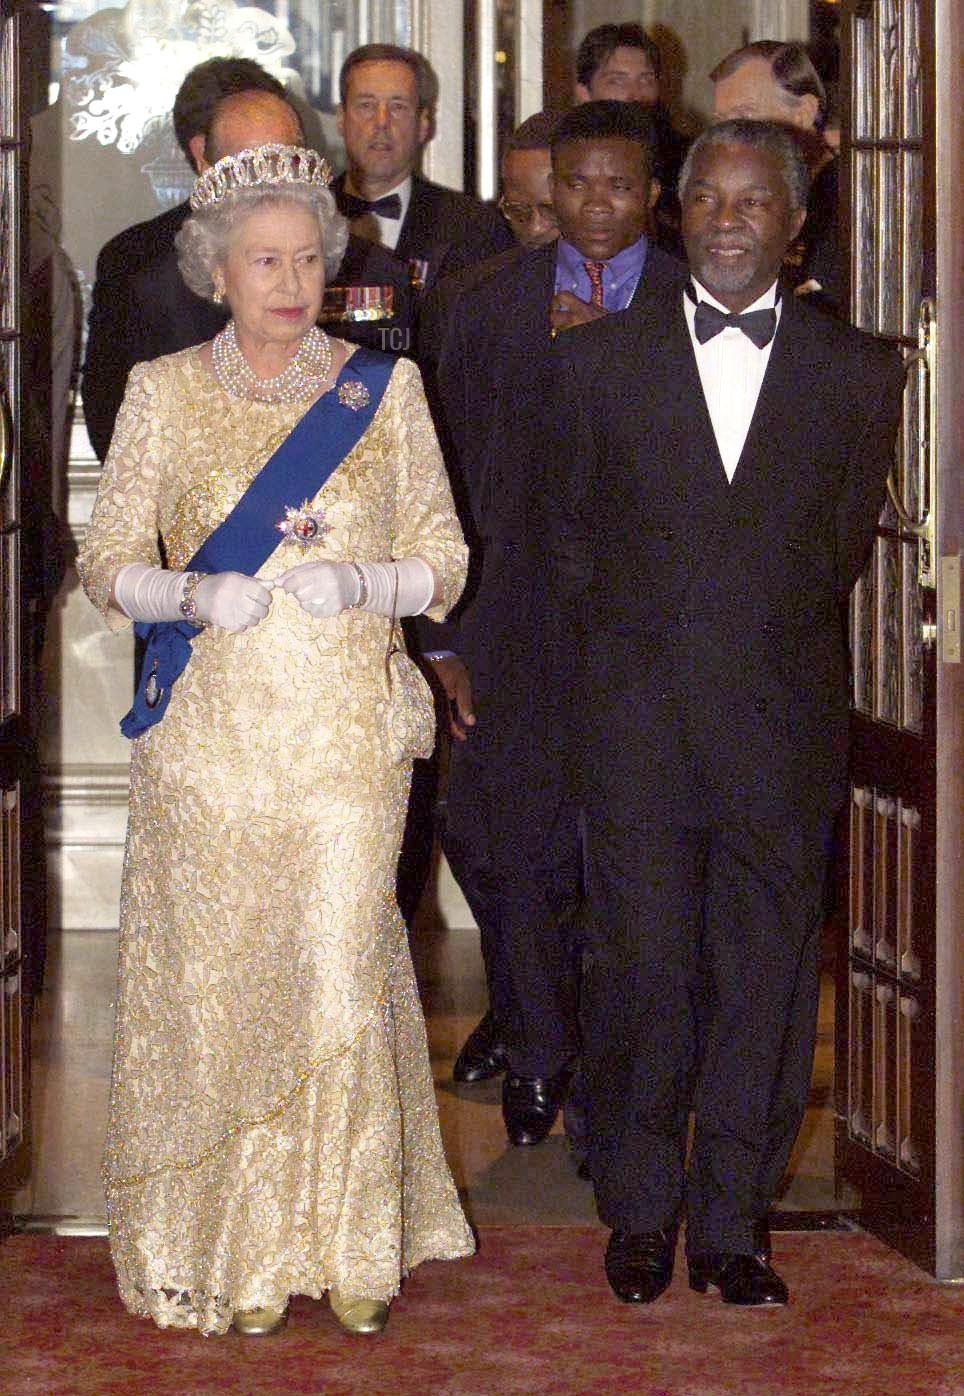 Britain's Queen Elizabeth II arrives with South African President Thabo Mbeki for a state banquet held for the Commonwealth Heads of Government, in Durban 12 November 1999